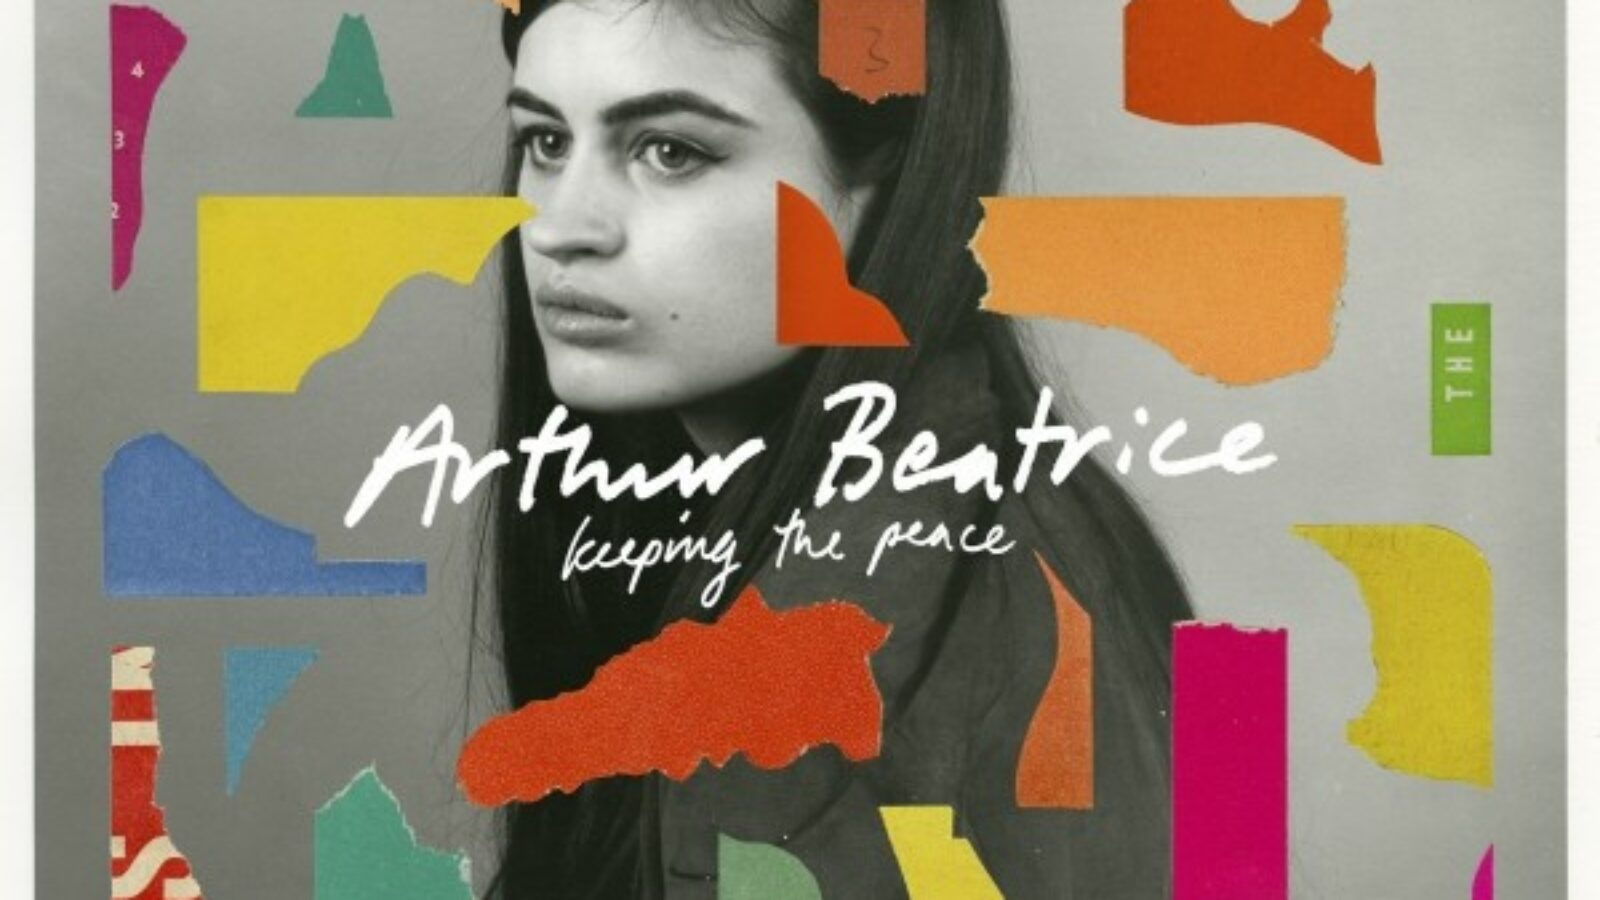 Arthur_Beatrice_KEEPING_THE_PEACE_COVER_copy_600_600